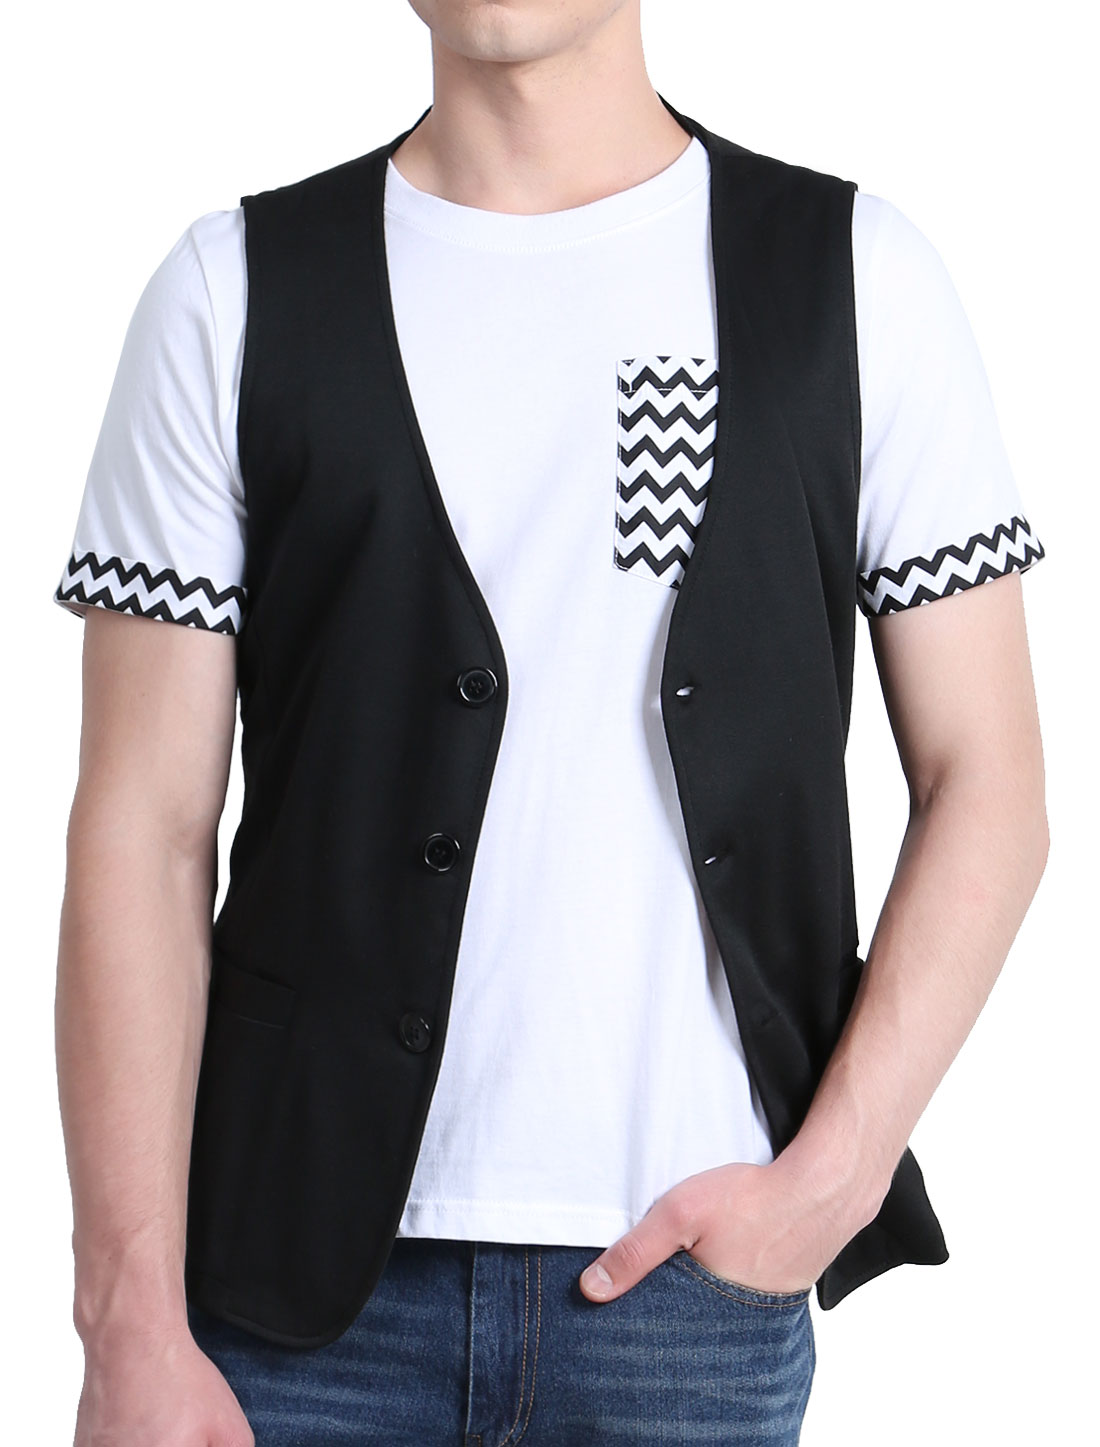 Mens Black Stylish Deep V Neck Sleeveless Three Buttons Front Casual Vest M